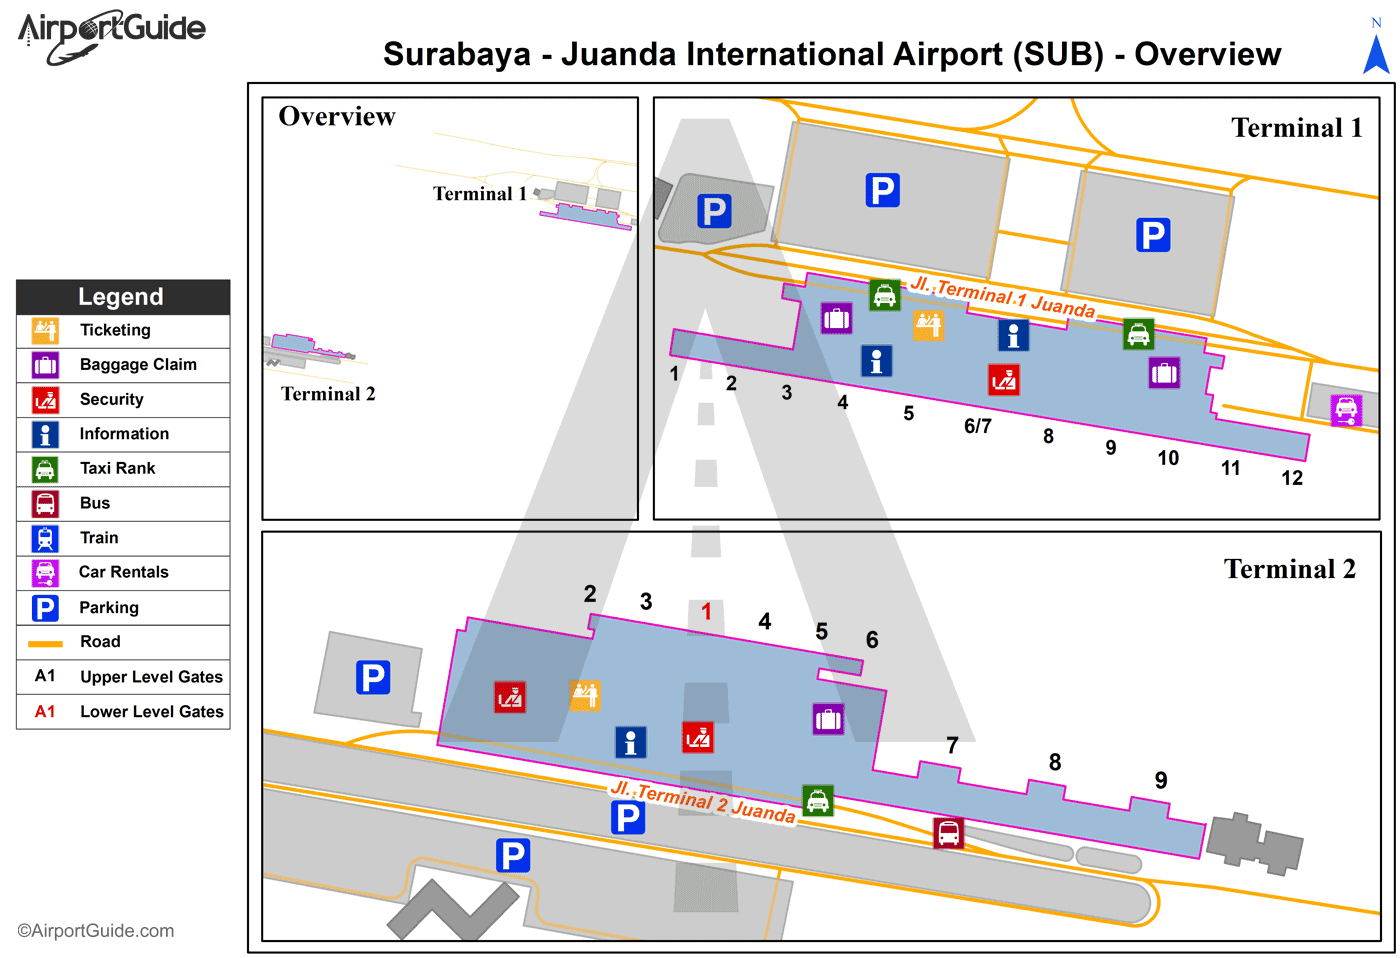 Surabaya - Juanda International (SUB) Airport Terminal Map - Overview